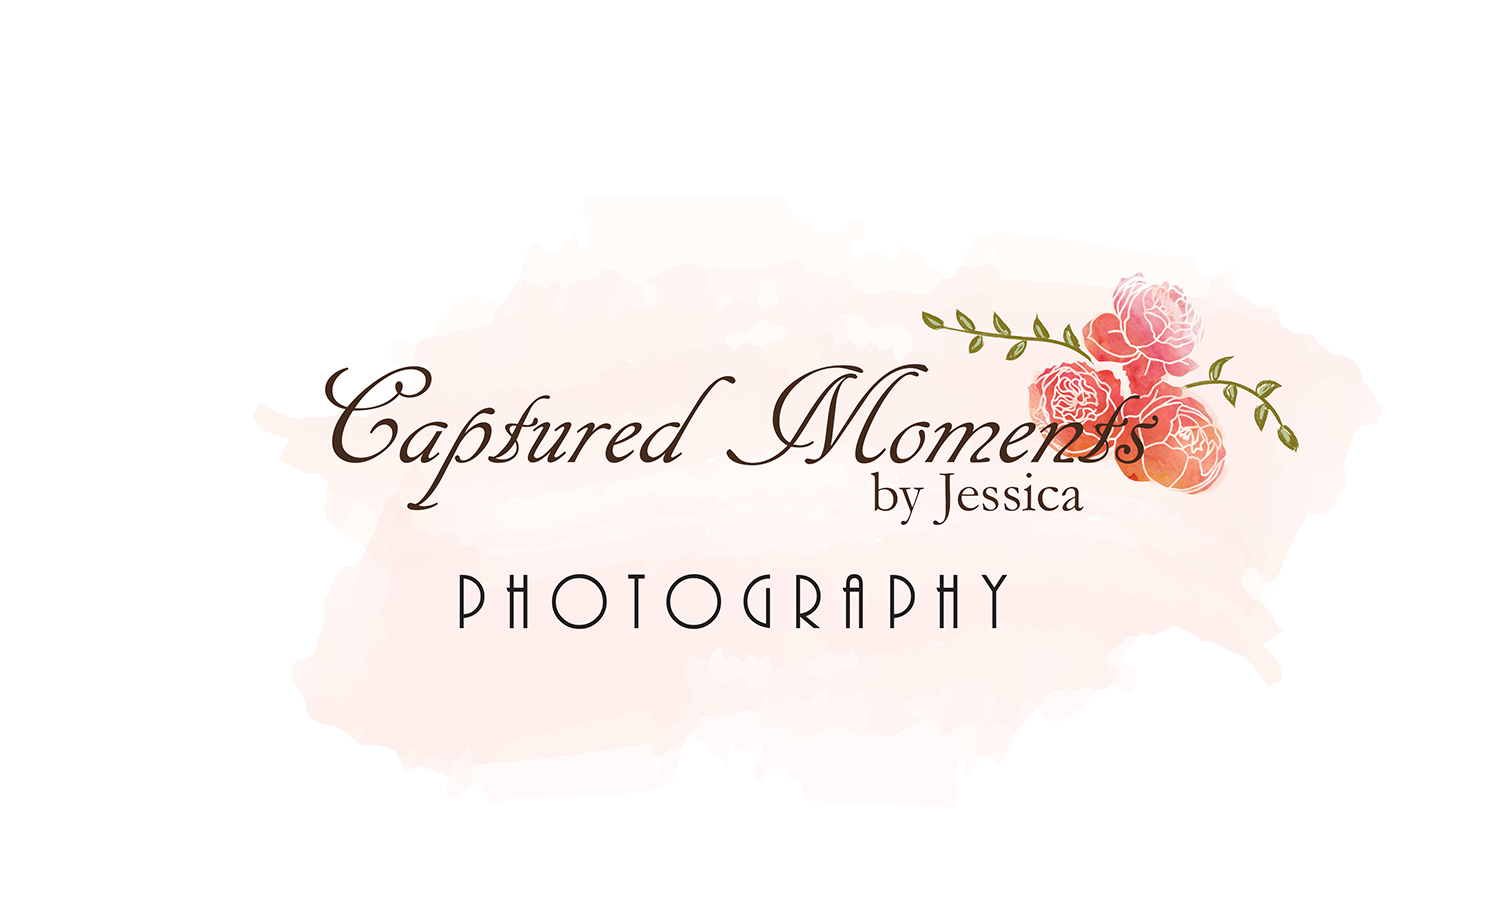 Captured Moments by Jessica